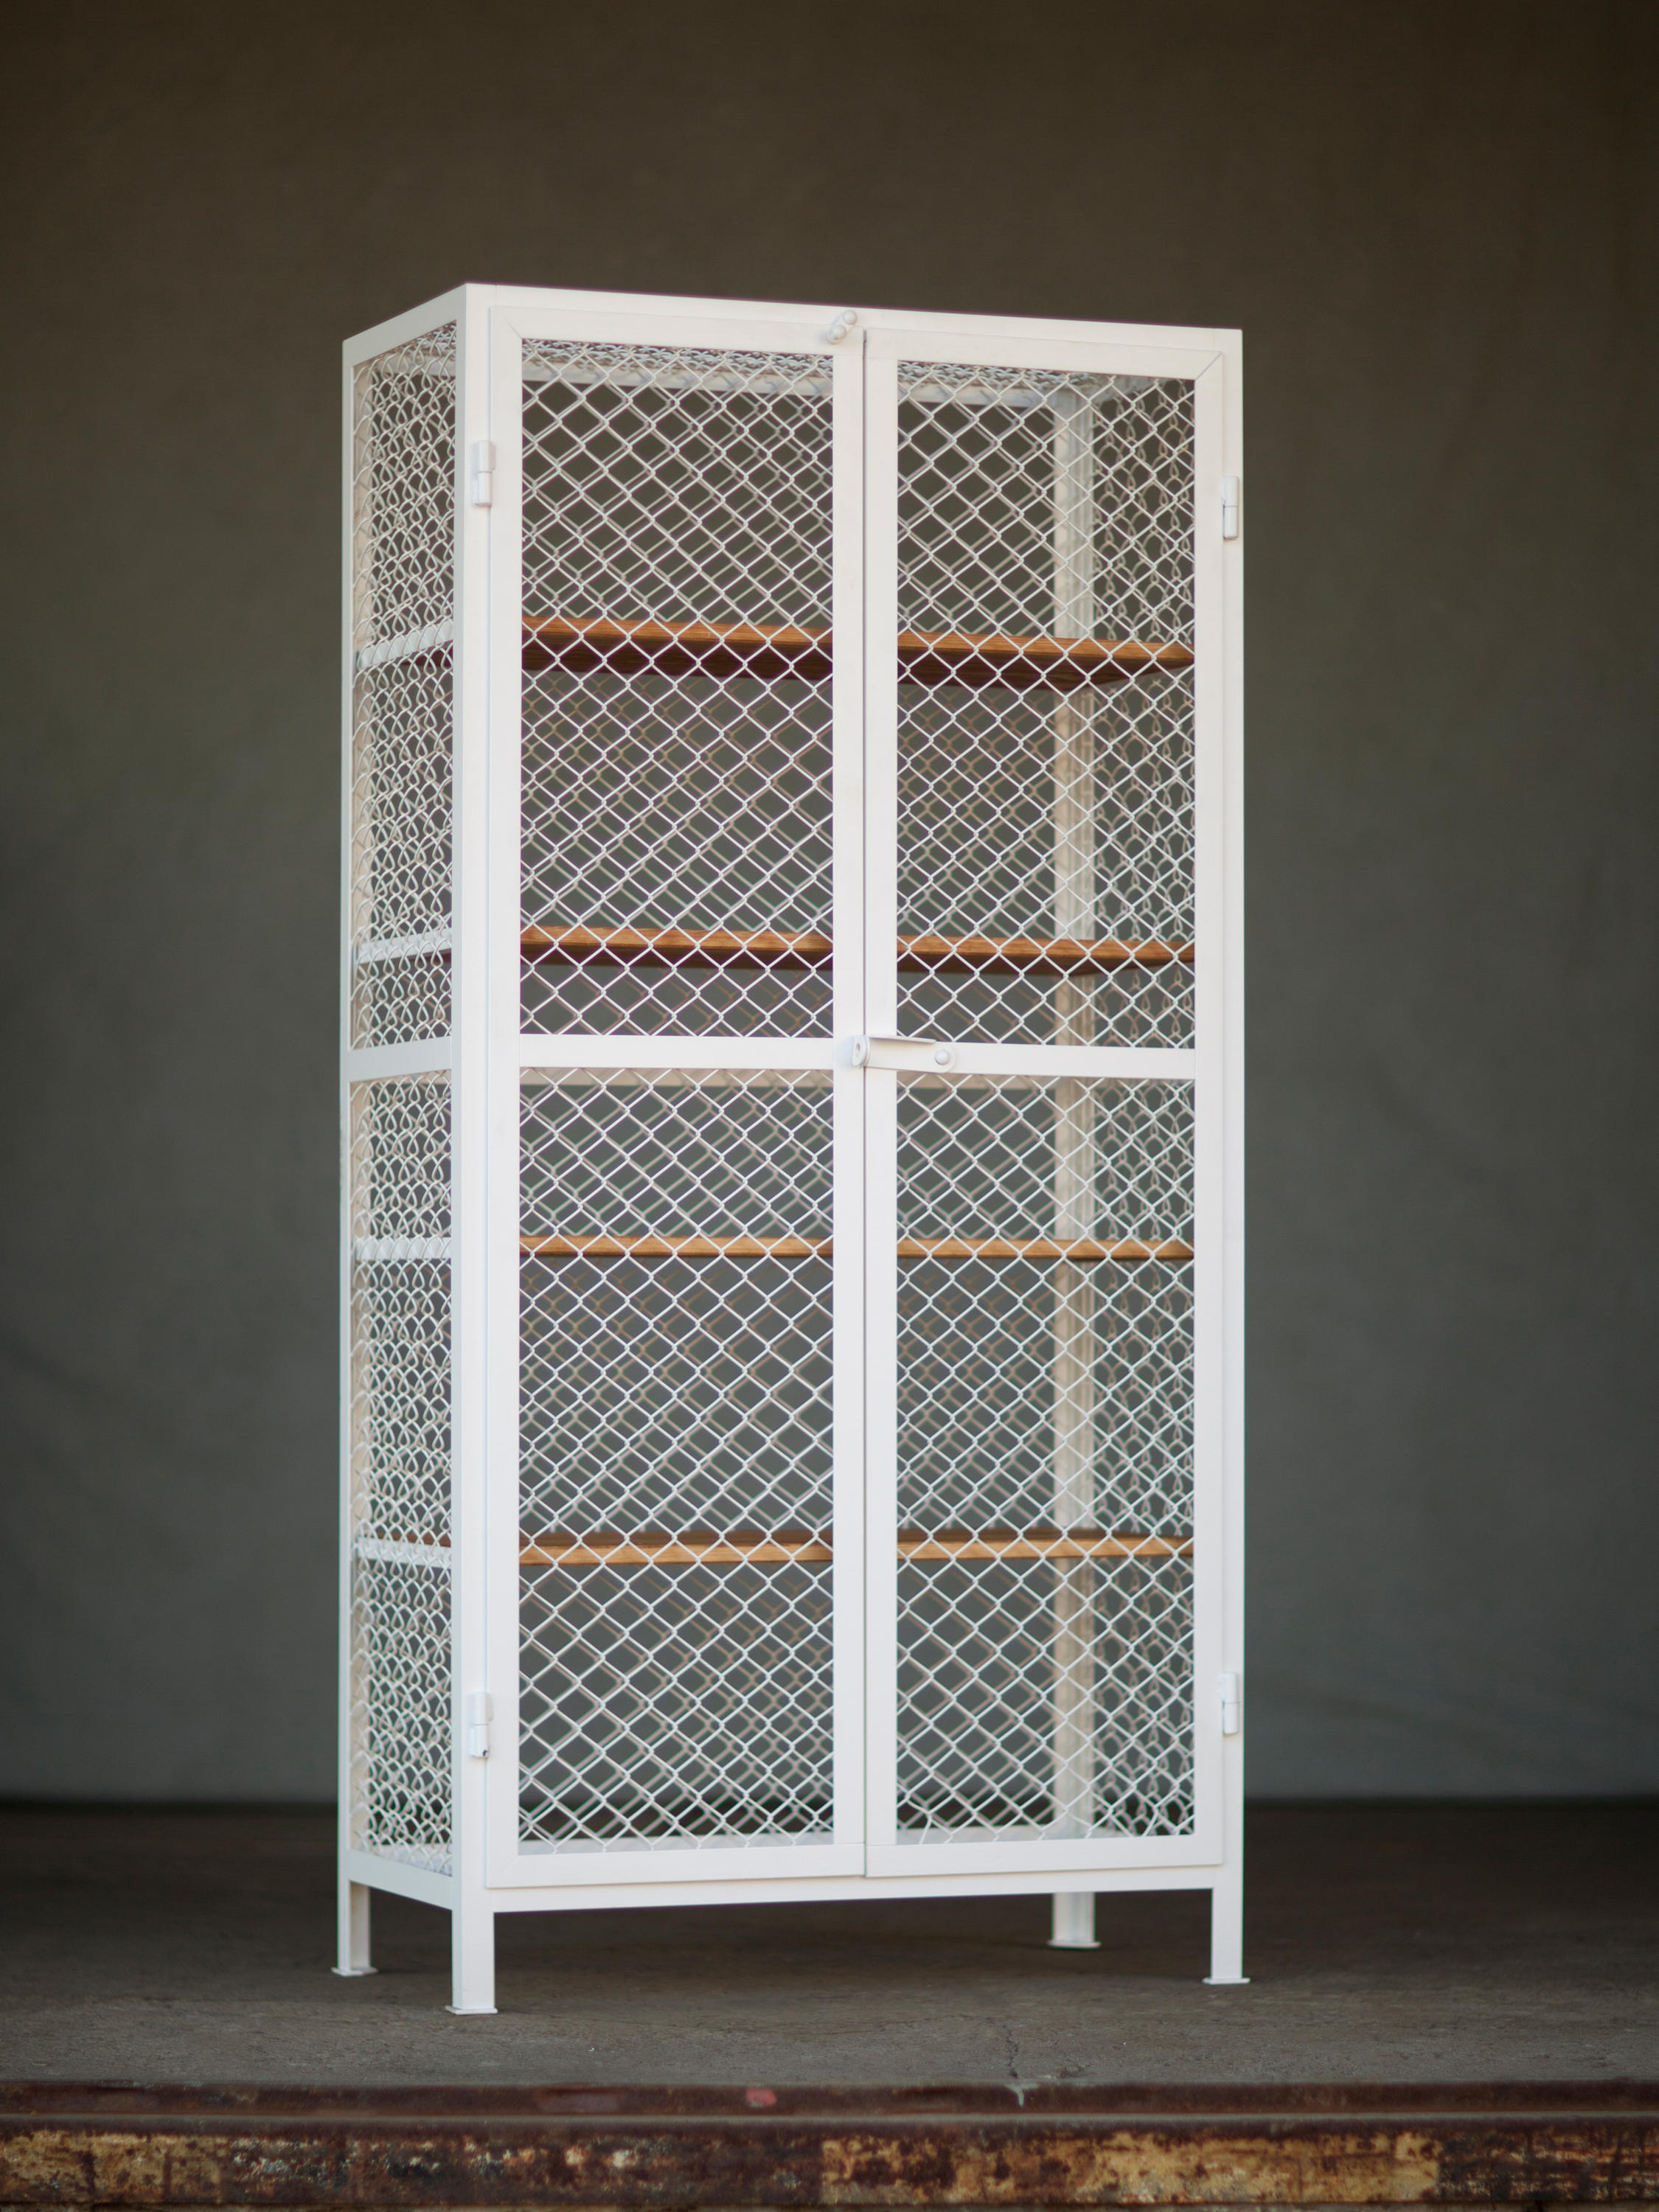 MULTI CABINET 2 - Cabinets from Noodles Noodles & Noodles | Architonic